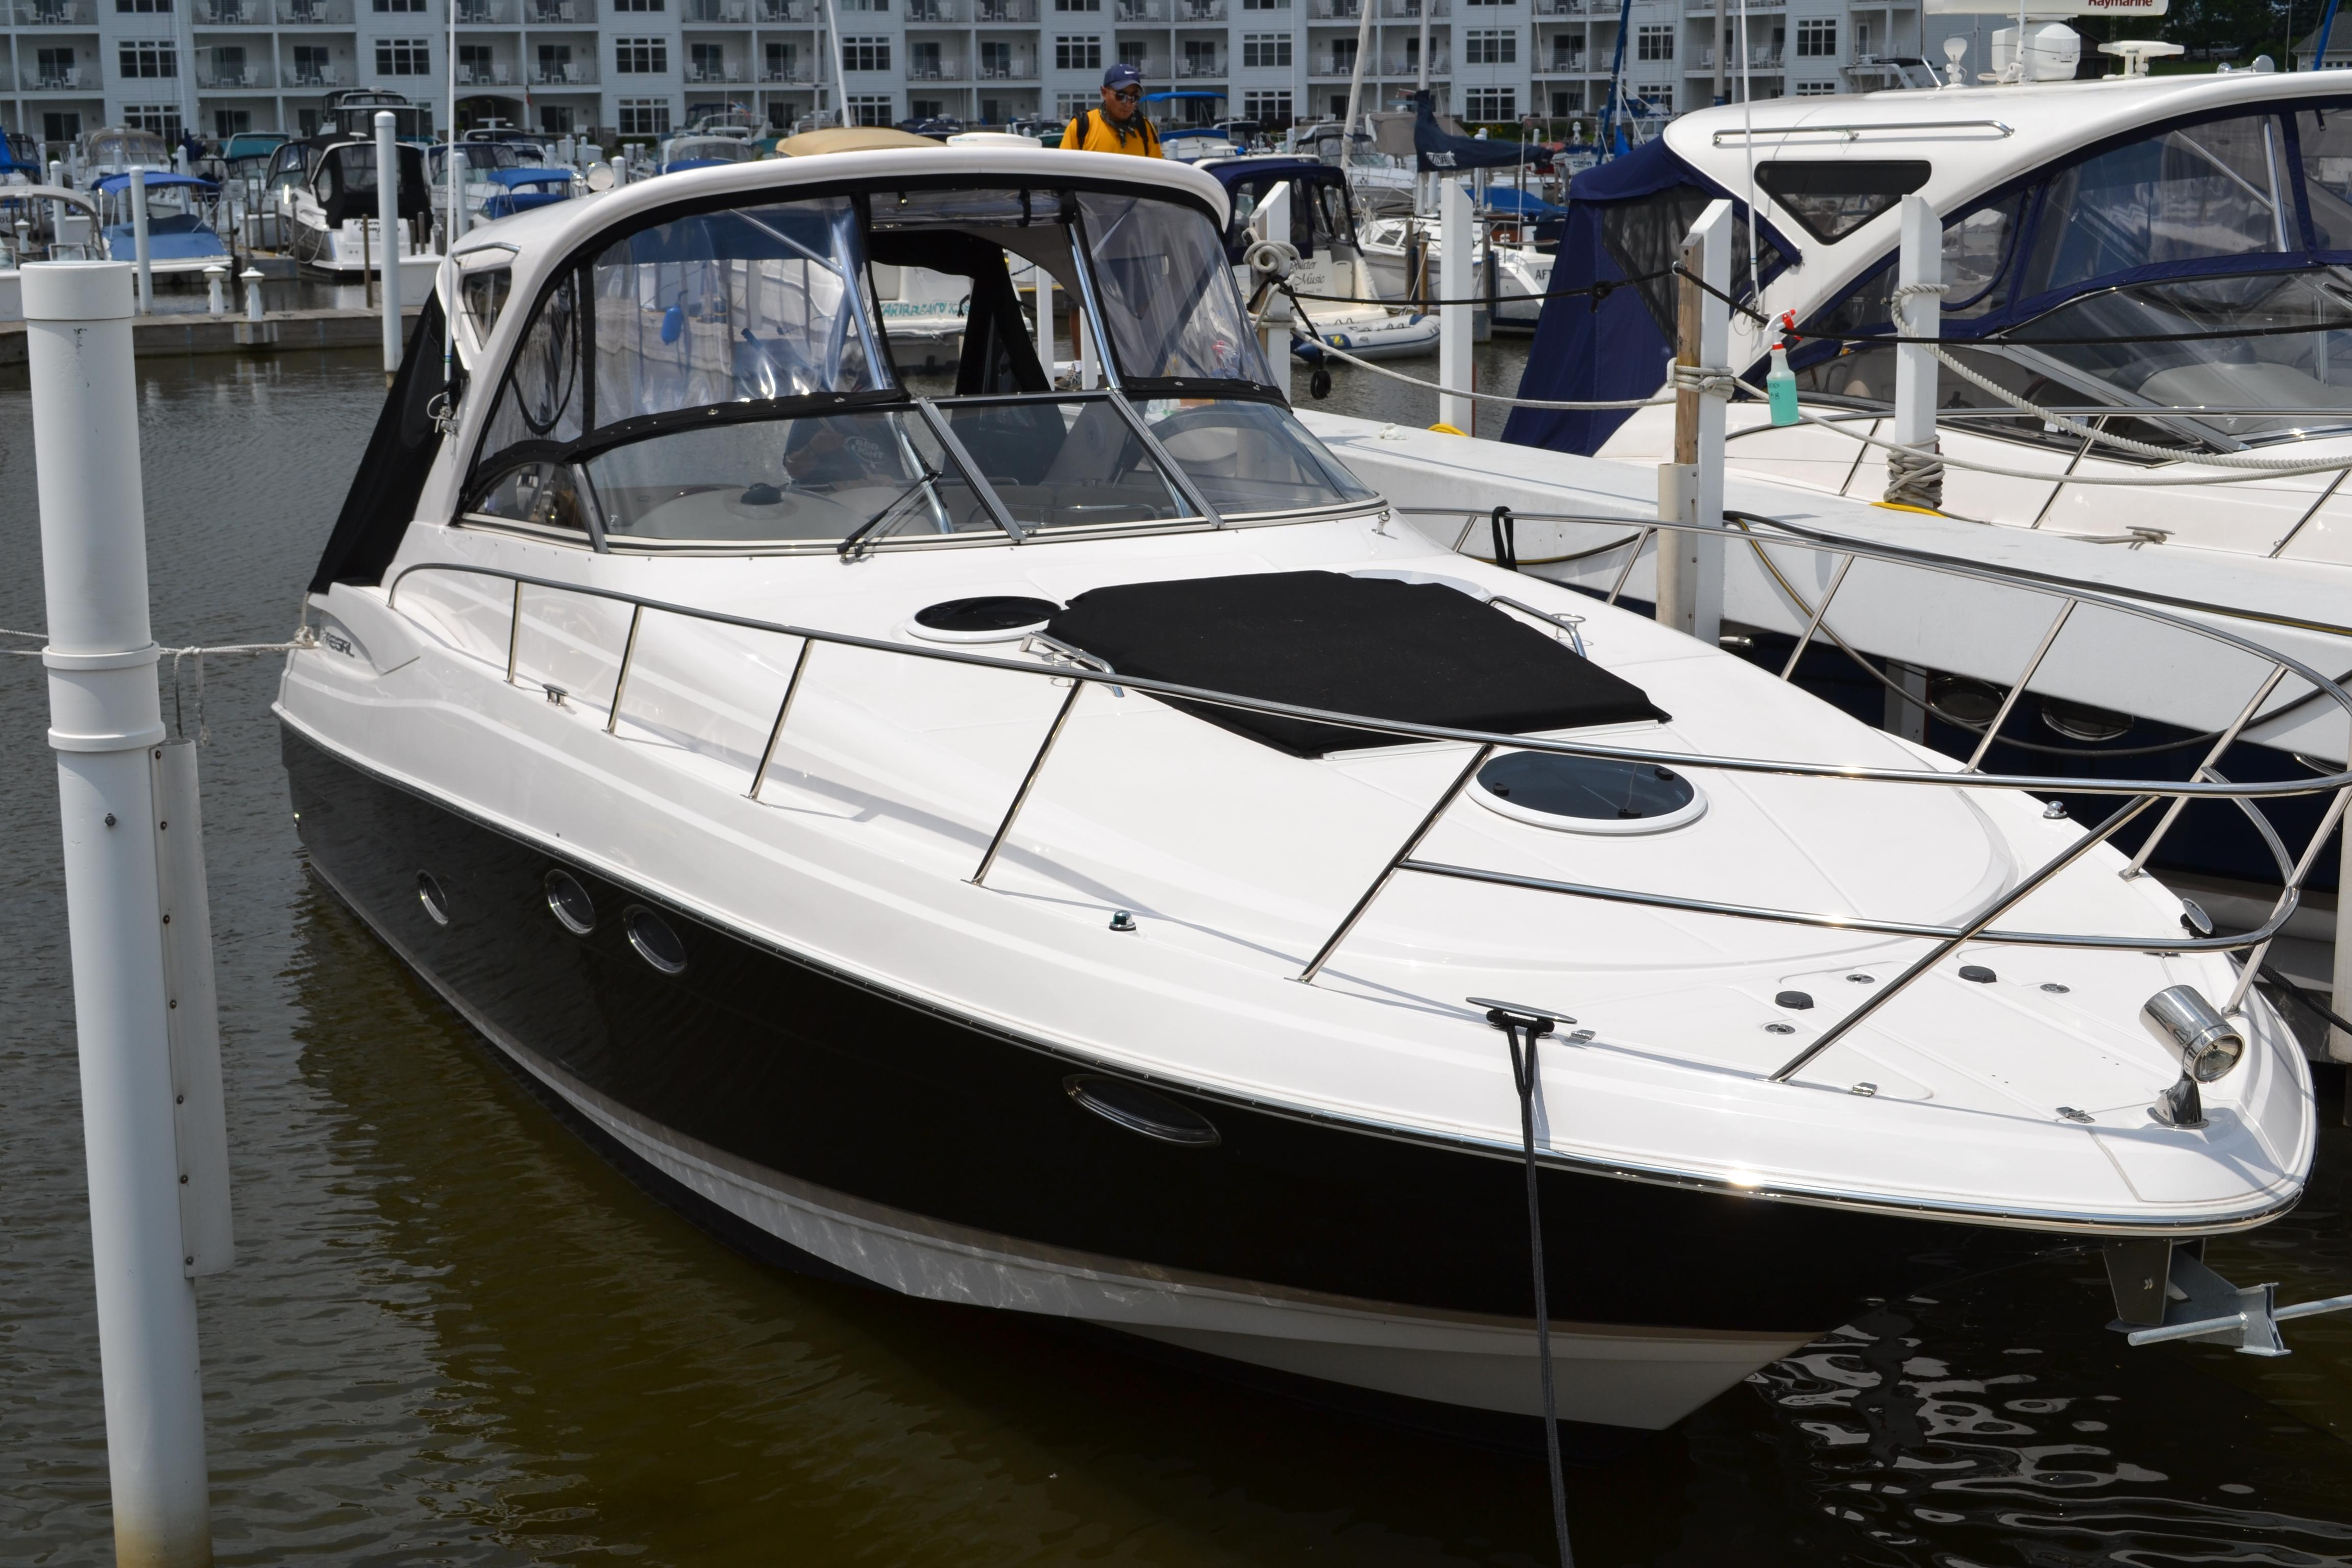 used regal yachts for sale from 35 to 40 feet. Black Bedroom Furniture Sets. Home Design Ideas